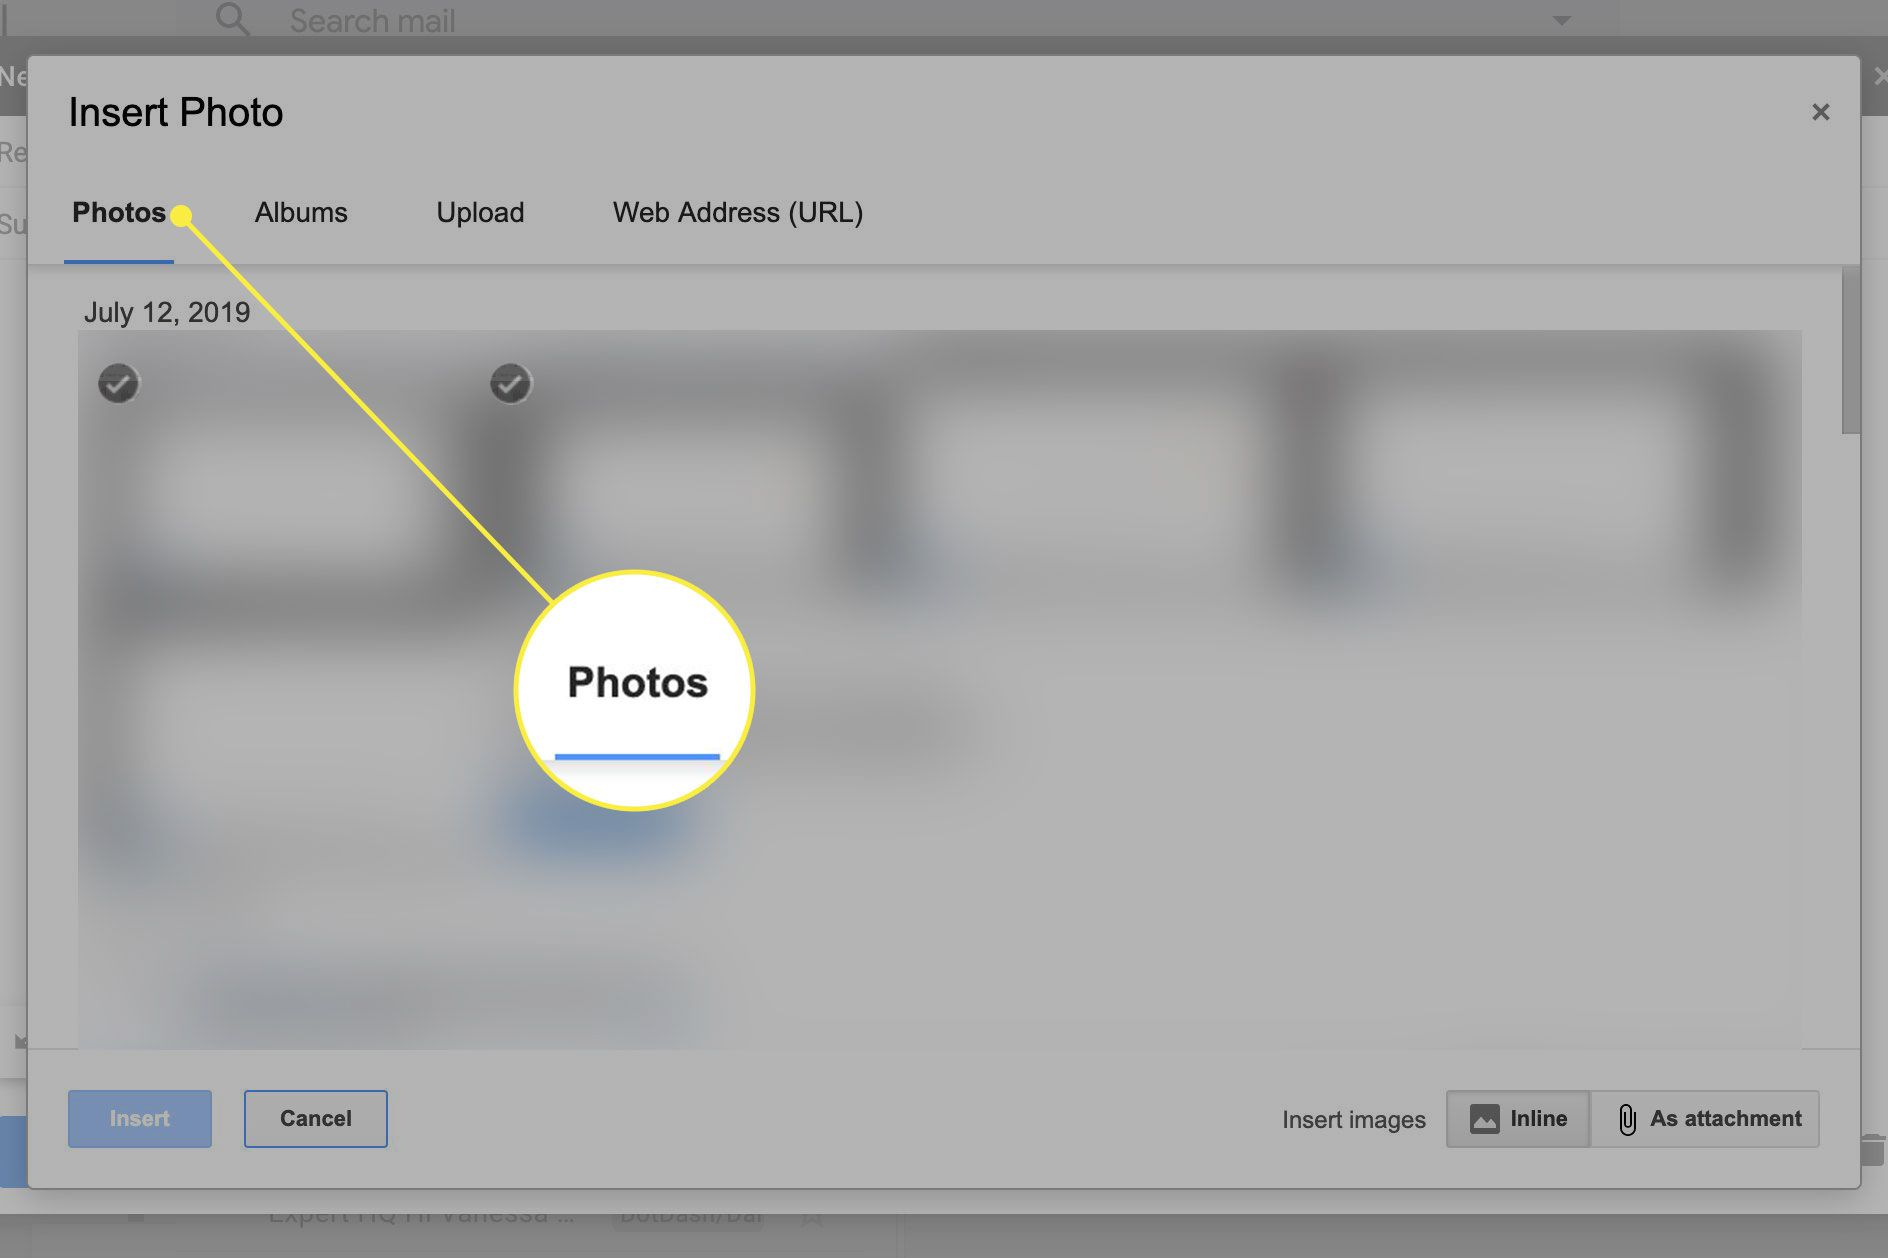 A screenshot of the Insert Photo screen in Gmail with the Photos tab highlighted